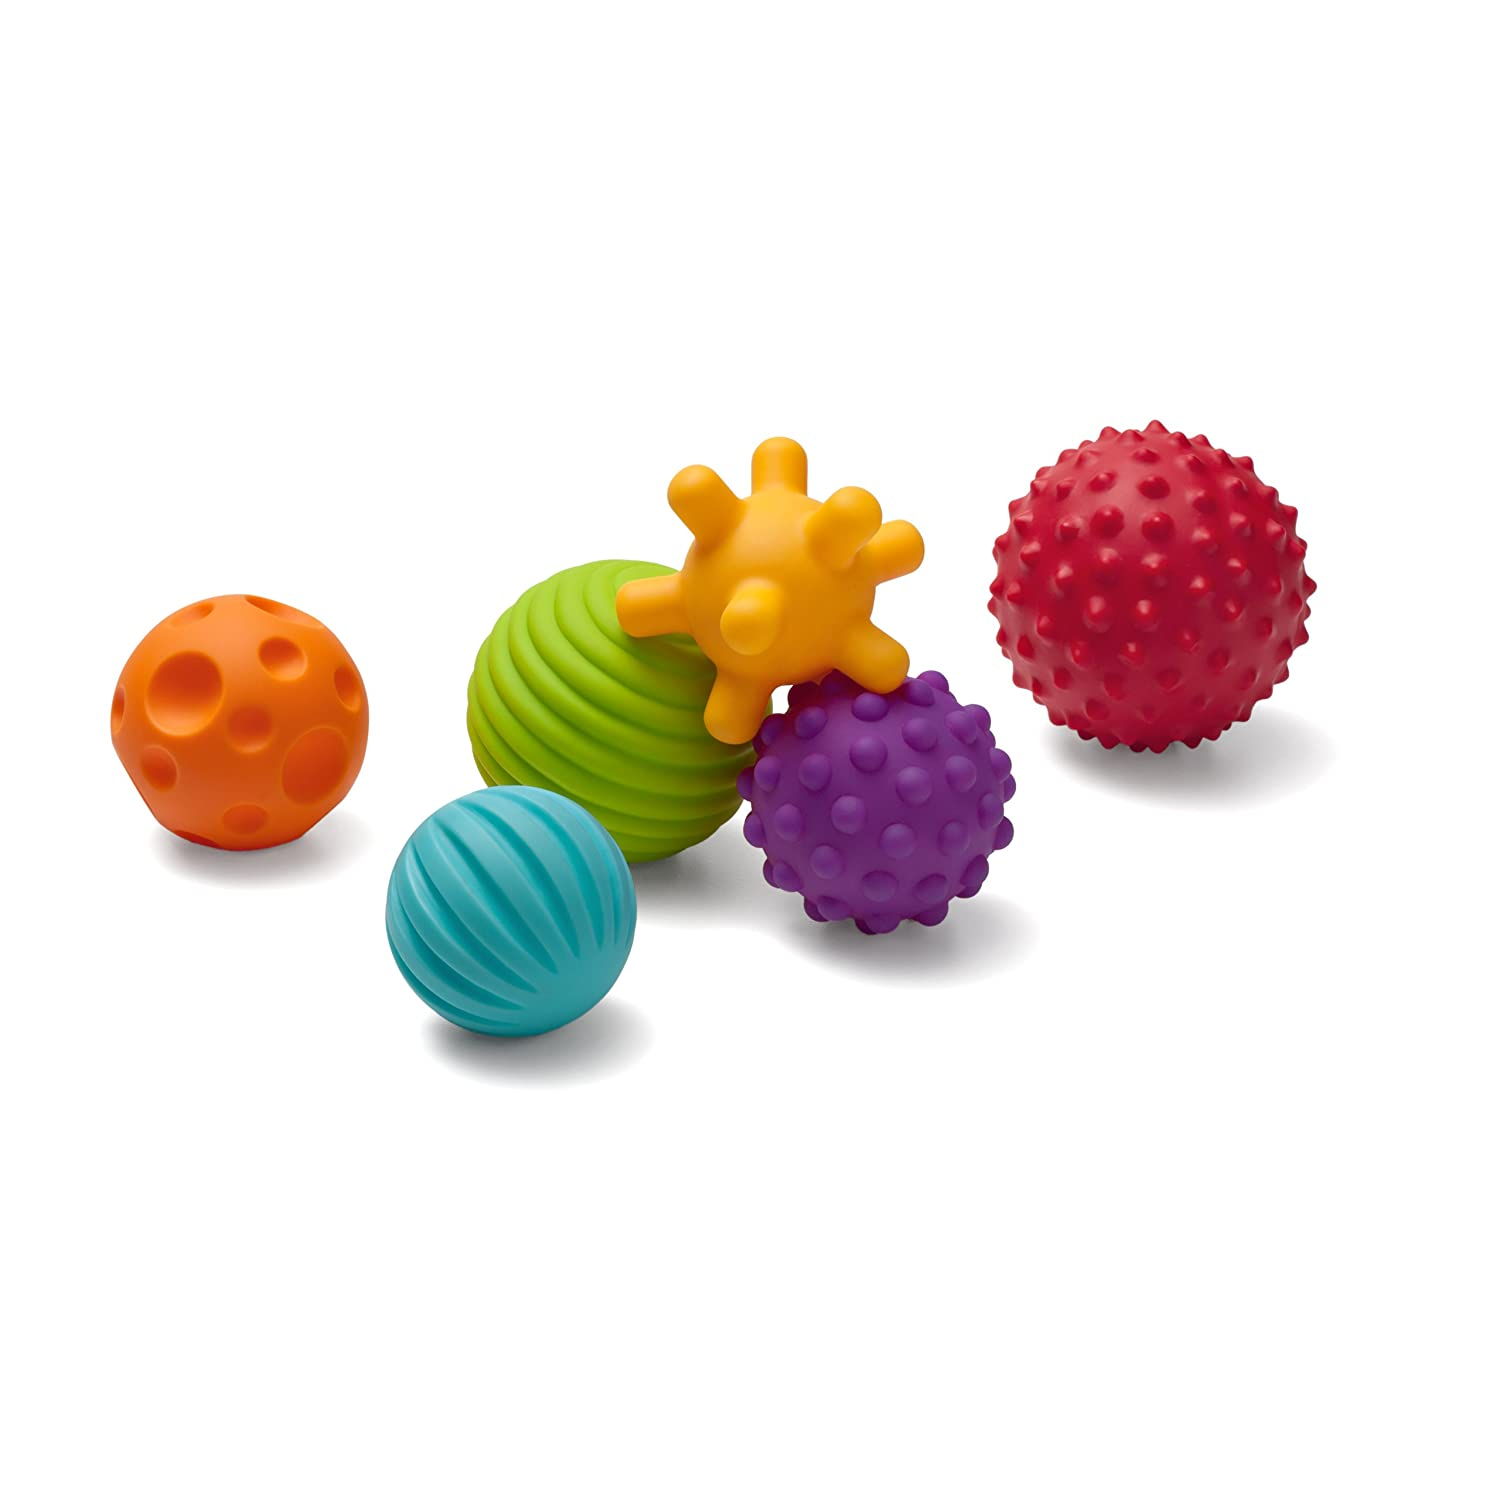 Infantino Textured Multi Ball Set 206-688Z